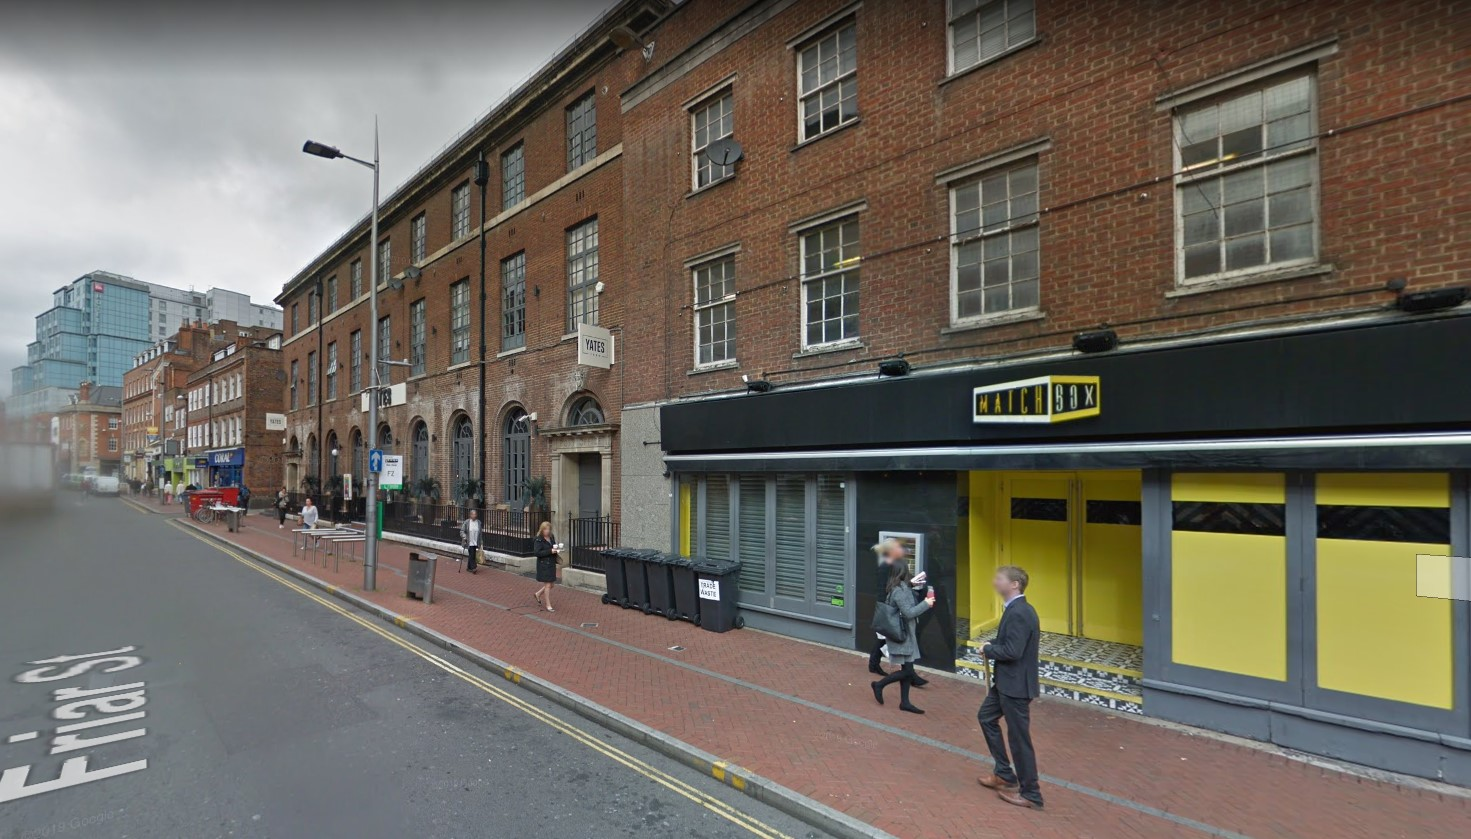 Incident involving a death of a man near nightclub now confirmed as manslaughter investigation (google maps)